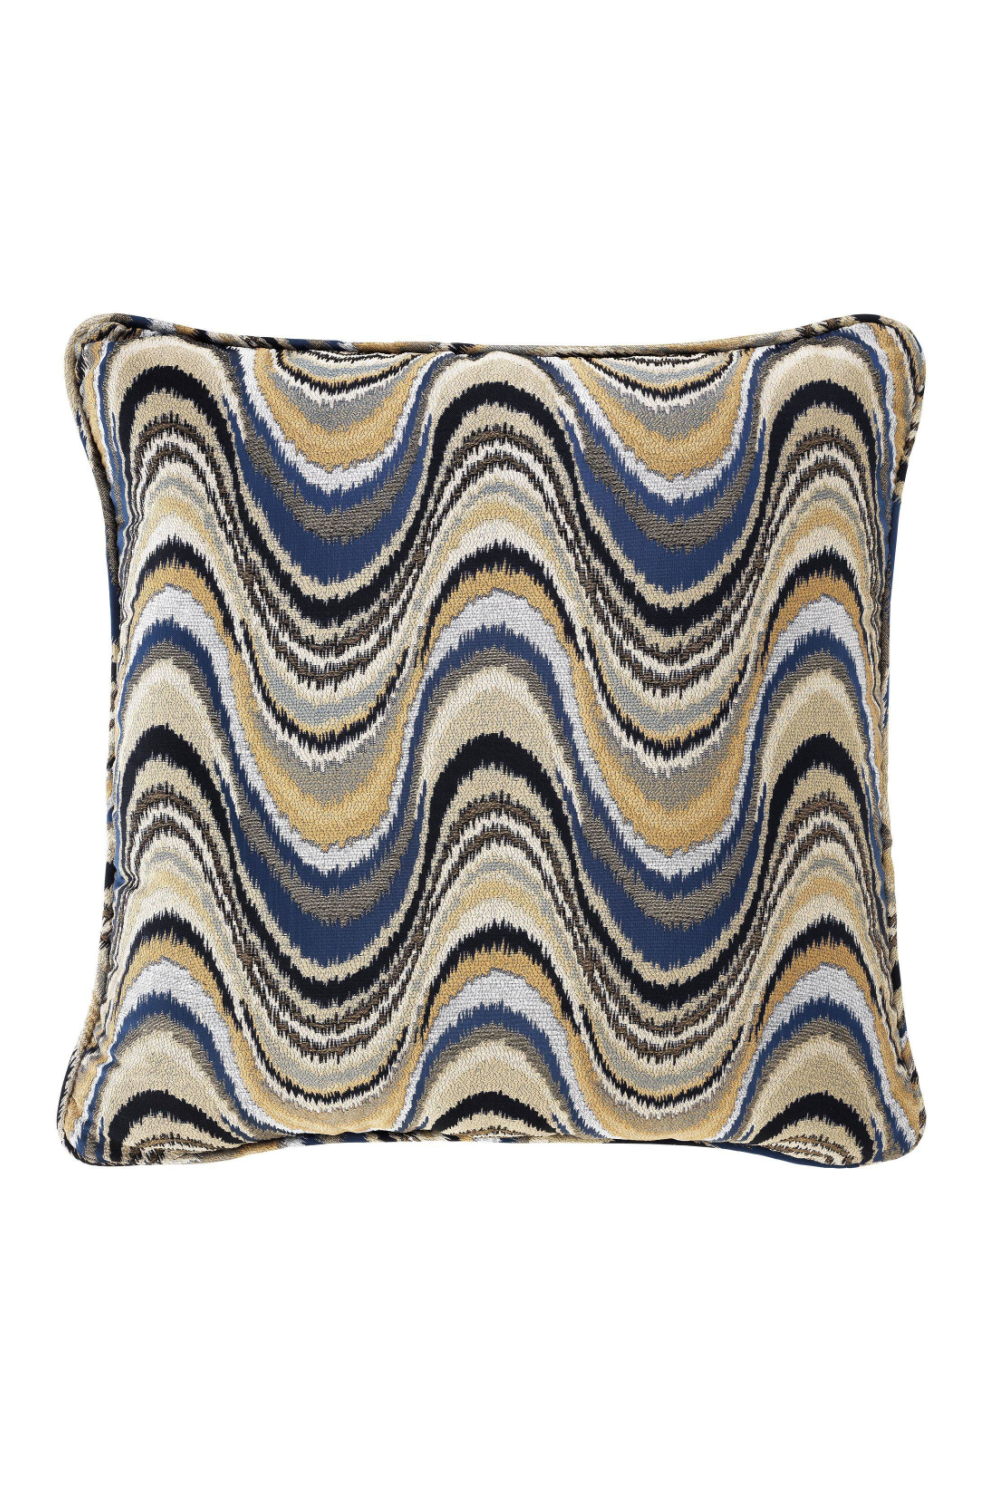 Blue Pattern Pillow - S | Eichholtz Jardin | OROA Modern Luxury Decor